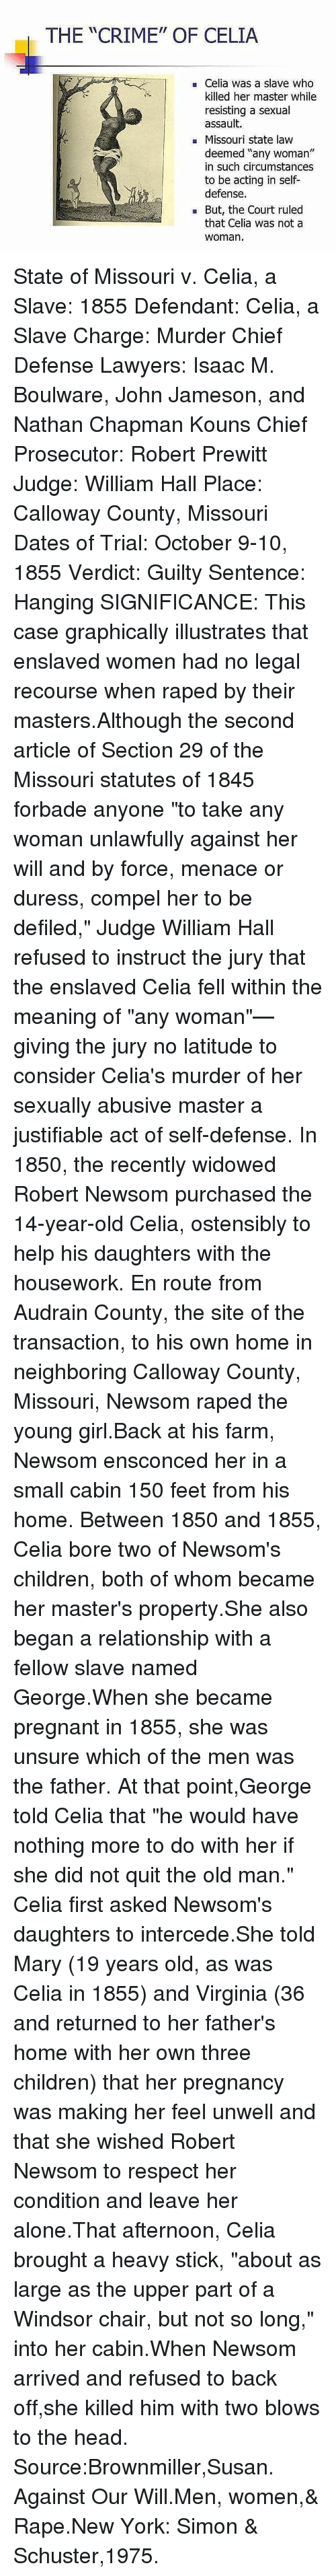 """Being Alone, Children, and Crime: THE """"CRIME"""" OF CELIA  Celia was a slave who  killed her master while  resisting a sexual  assault.  Missouri state law  deemed """"any woman""""  in such circumstances  to be acting in self-  defense.  But, the Court ruled  that Celia was not a  Woman. State of Missouri v. Celia, a Slave: 1855 Defendant: Celia, a Slave Charge: Murder Chief Defense Lawyers: Isaac M. Boulware, John Jameson, and Nathan Chapman Kouns Chief Prosecutor: Robert Prewitt Judge: William Hall Place: Calloway County, Missouri Dates of Trial: October 9-10, 1855 Verdict: Guilty Sentence: Hanging SIGNIFICANCE: This case graphically illustrates that enslaved women had no legal recourse when raped by their masters.Although the second article of Section 29 of the Missouri statutes of 1845 forbade anyone """"to take any woman unlawfully against her will and by force, menace or duress, compel her to be defiled,"""" Judge William Hall refused to instruct the jury that the enslaved Celia fell within the meaning of """"any woman""""—giving the jury no latitude to consider Celia's murder of her sexually abusive master a justifiable act of self-defense. In 1850, the recently widowed Robert Newsom purchased the 14-year-old Celia, ostensibly to help his daughters with the housework. En route from Audrain County, the site of the transaction, to his own home in neighboring Calloway County, Missouri, Newsom raped the young girl.Back at his farm, Newsom ensconced her in a small cabin 150 feet from his home. Between 1850 and 1855, Celia bore two of Newsom's children, both of whom became her master's property.She also began a relationship with a fellow slave named George.When she became pregnant in 1855, she was unsure which of the men was the father. At that point,George told Celia that """"he would have nothing more to do with her if she did not quit the old man."""" Celia first asked Newsom's daughters to intercede.She told Mary (19 years old, as was Celia in 1855) and Virginia (36 and returned to her """